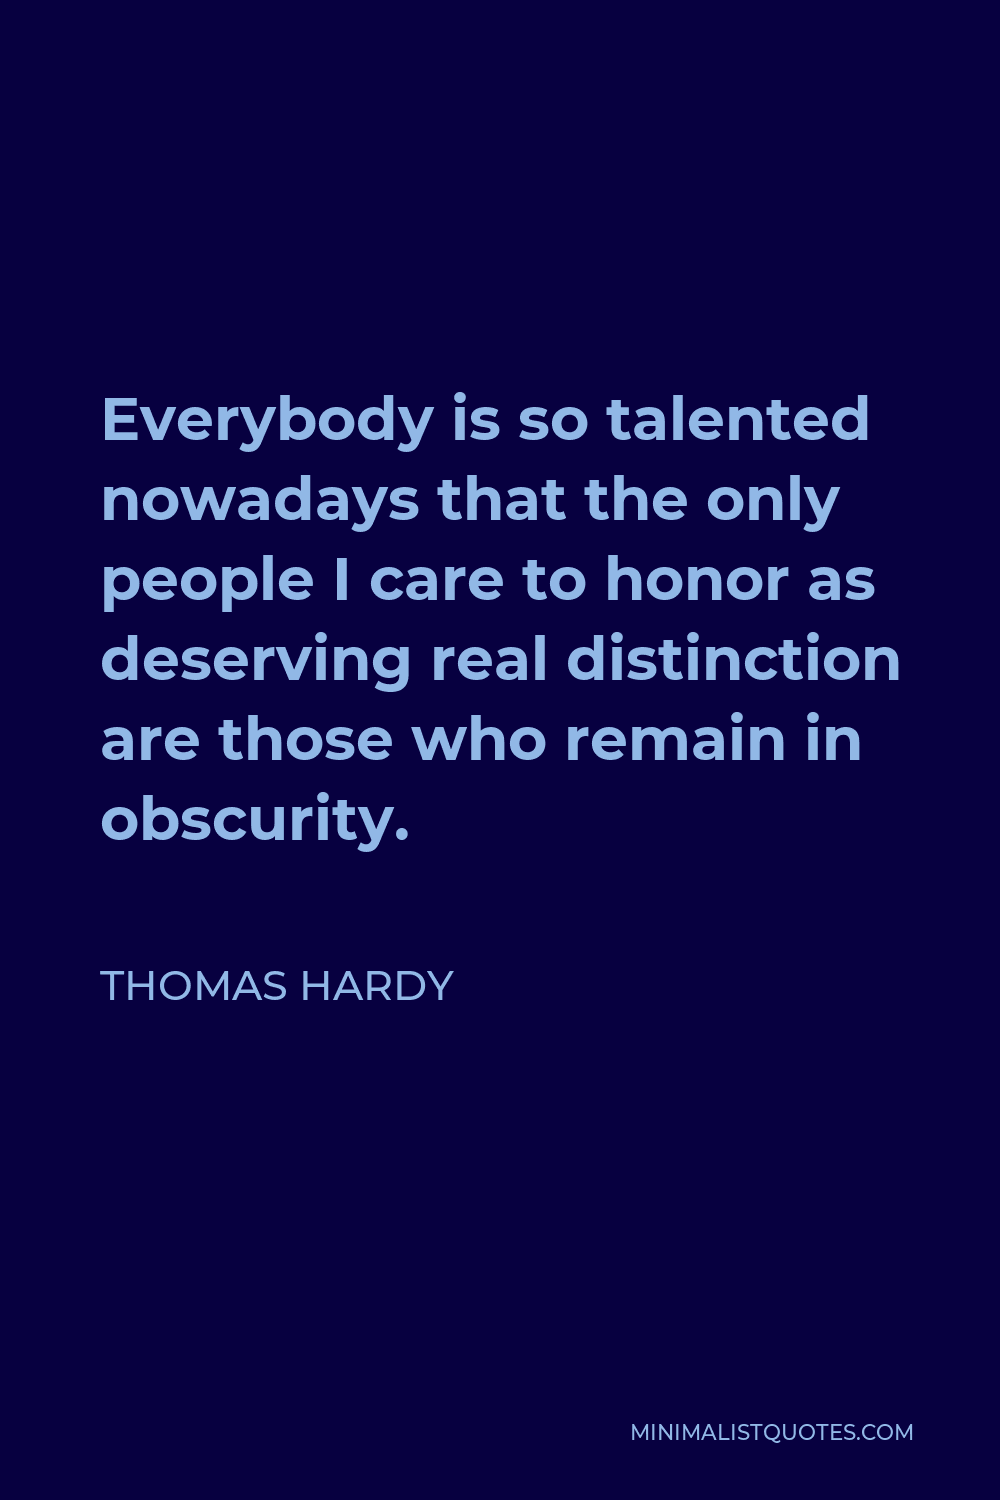 Thomas Hardy Quote - Everybody is so talented nowadays that the only people I care to honor as deserving real distinction are those who remain in obscurity.